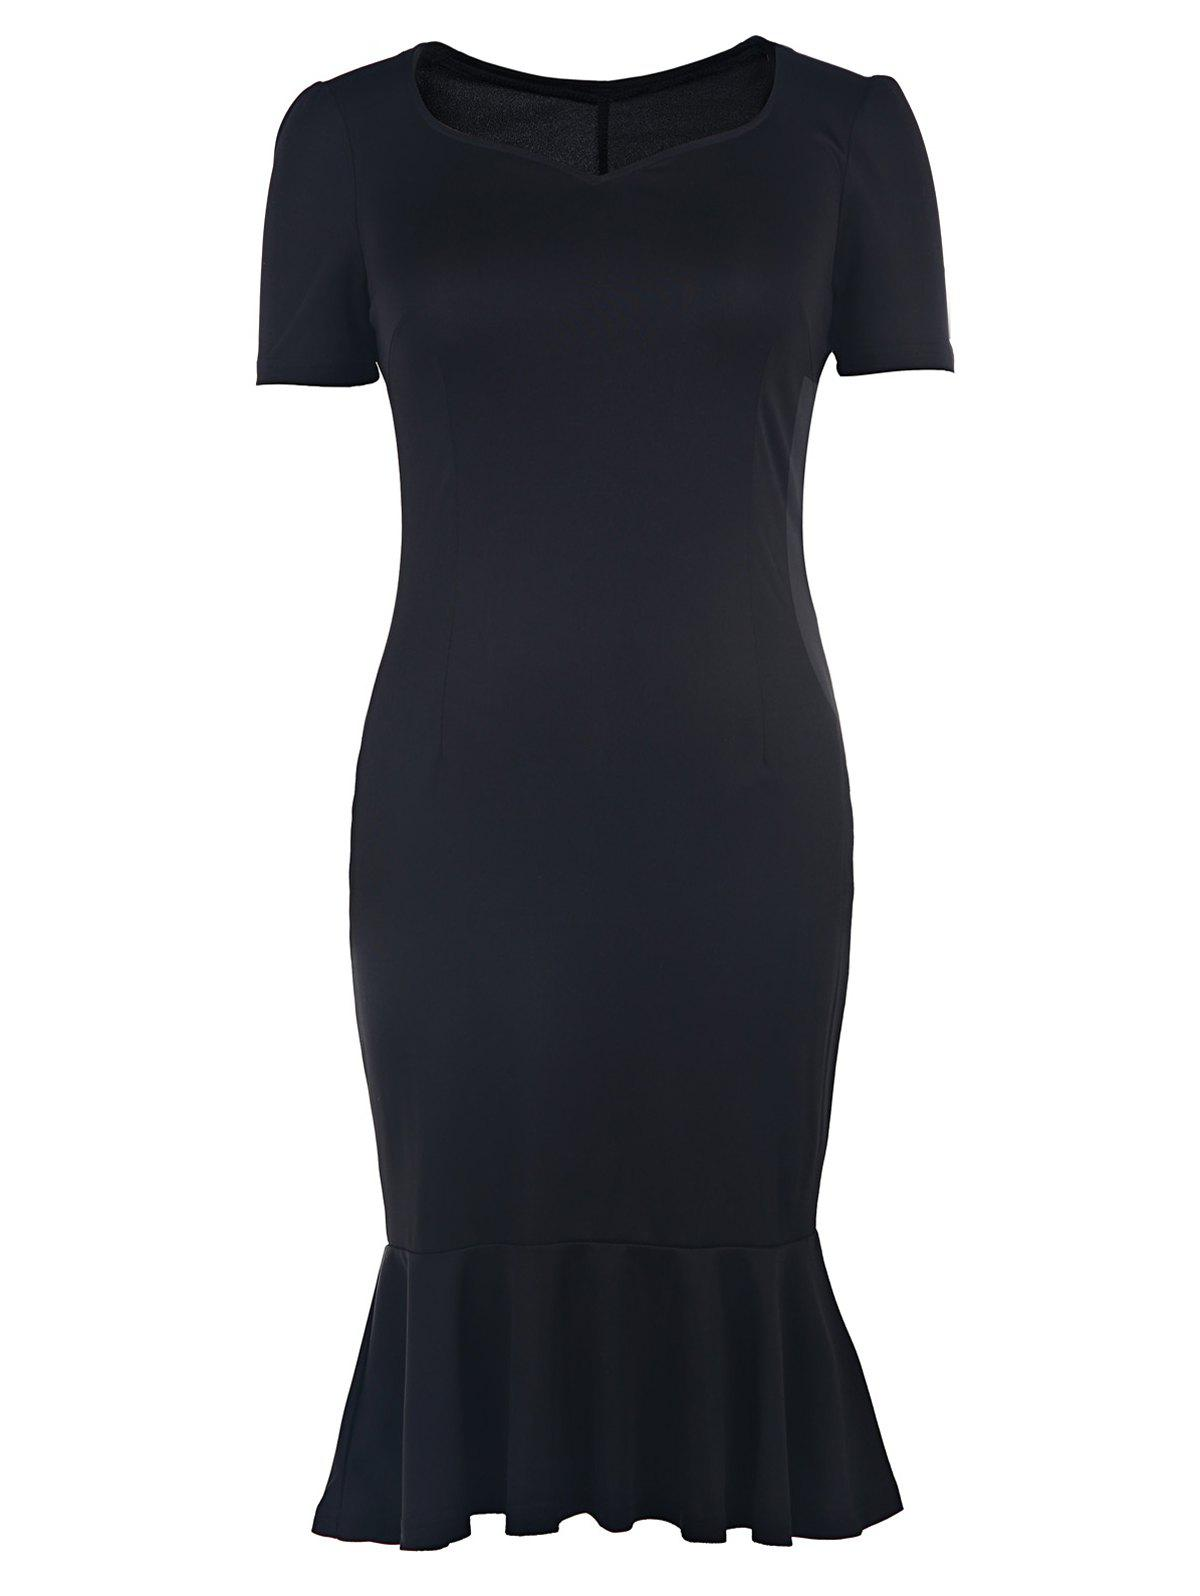 Elegant Sweetheart Collar Solid Color Bodycon Fishtail Dress For WomenWomen<br><br><br>Size: M<br>Color: BLACK